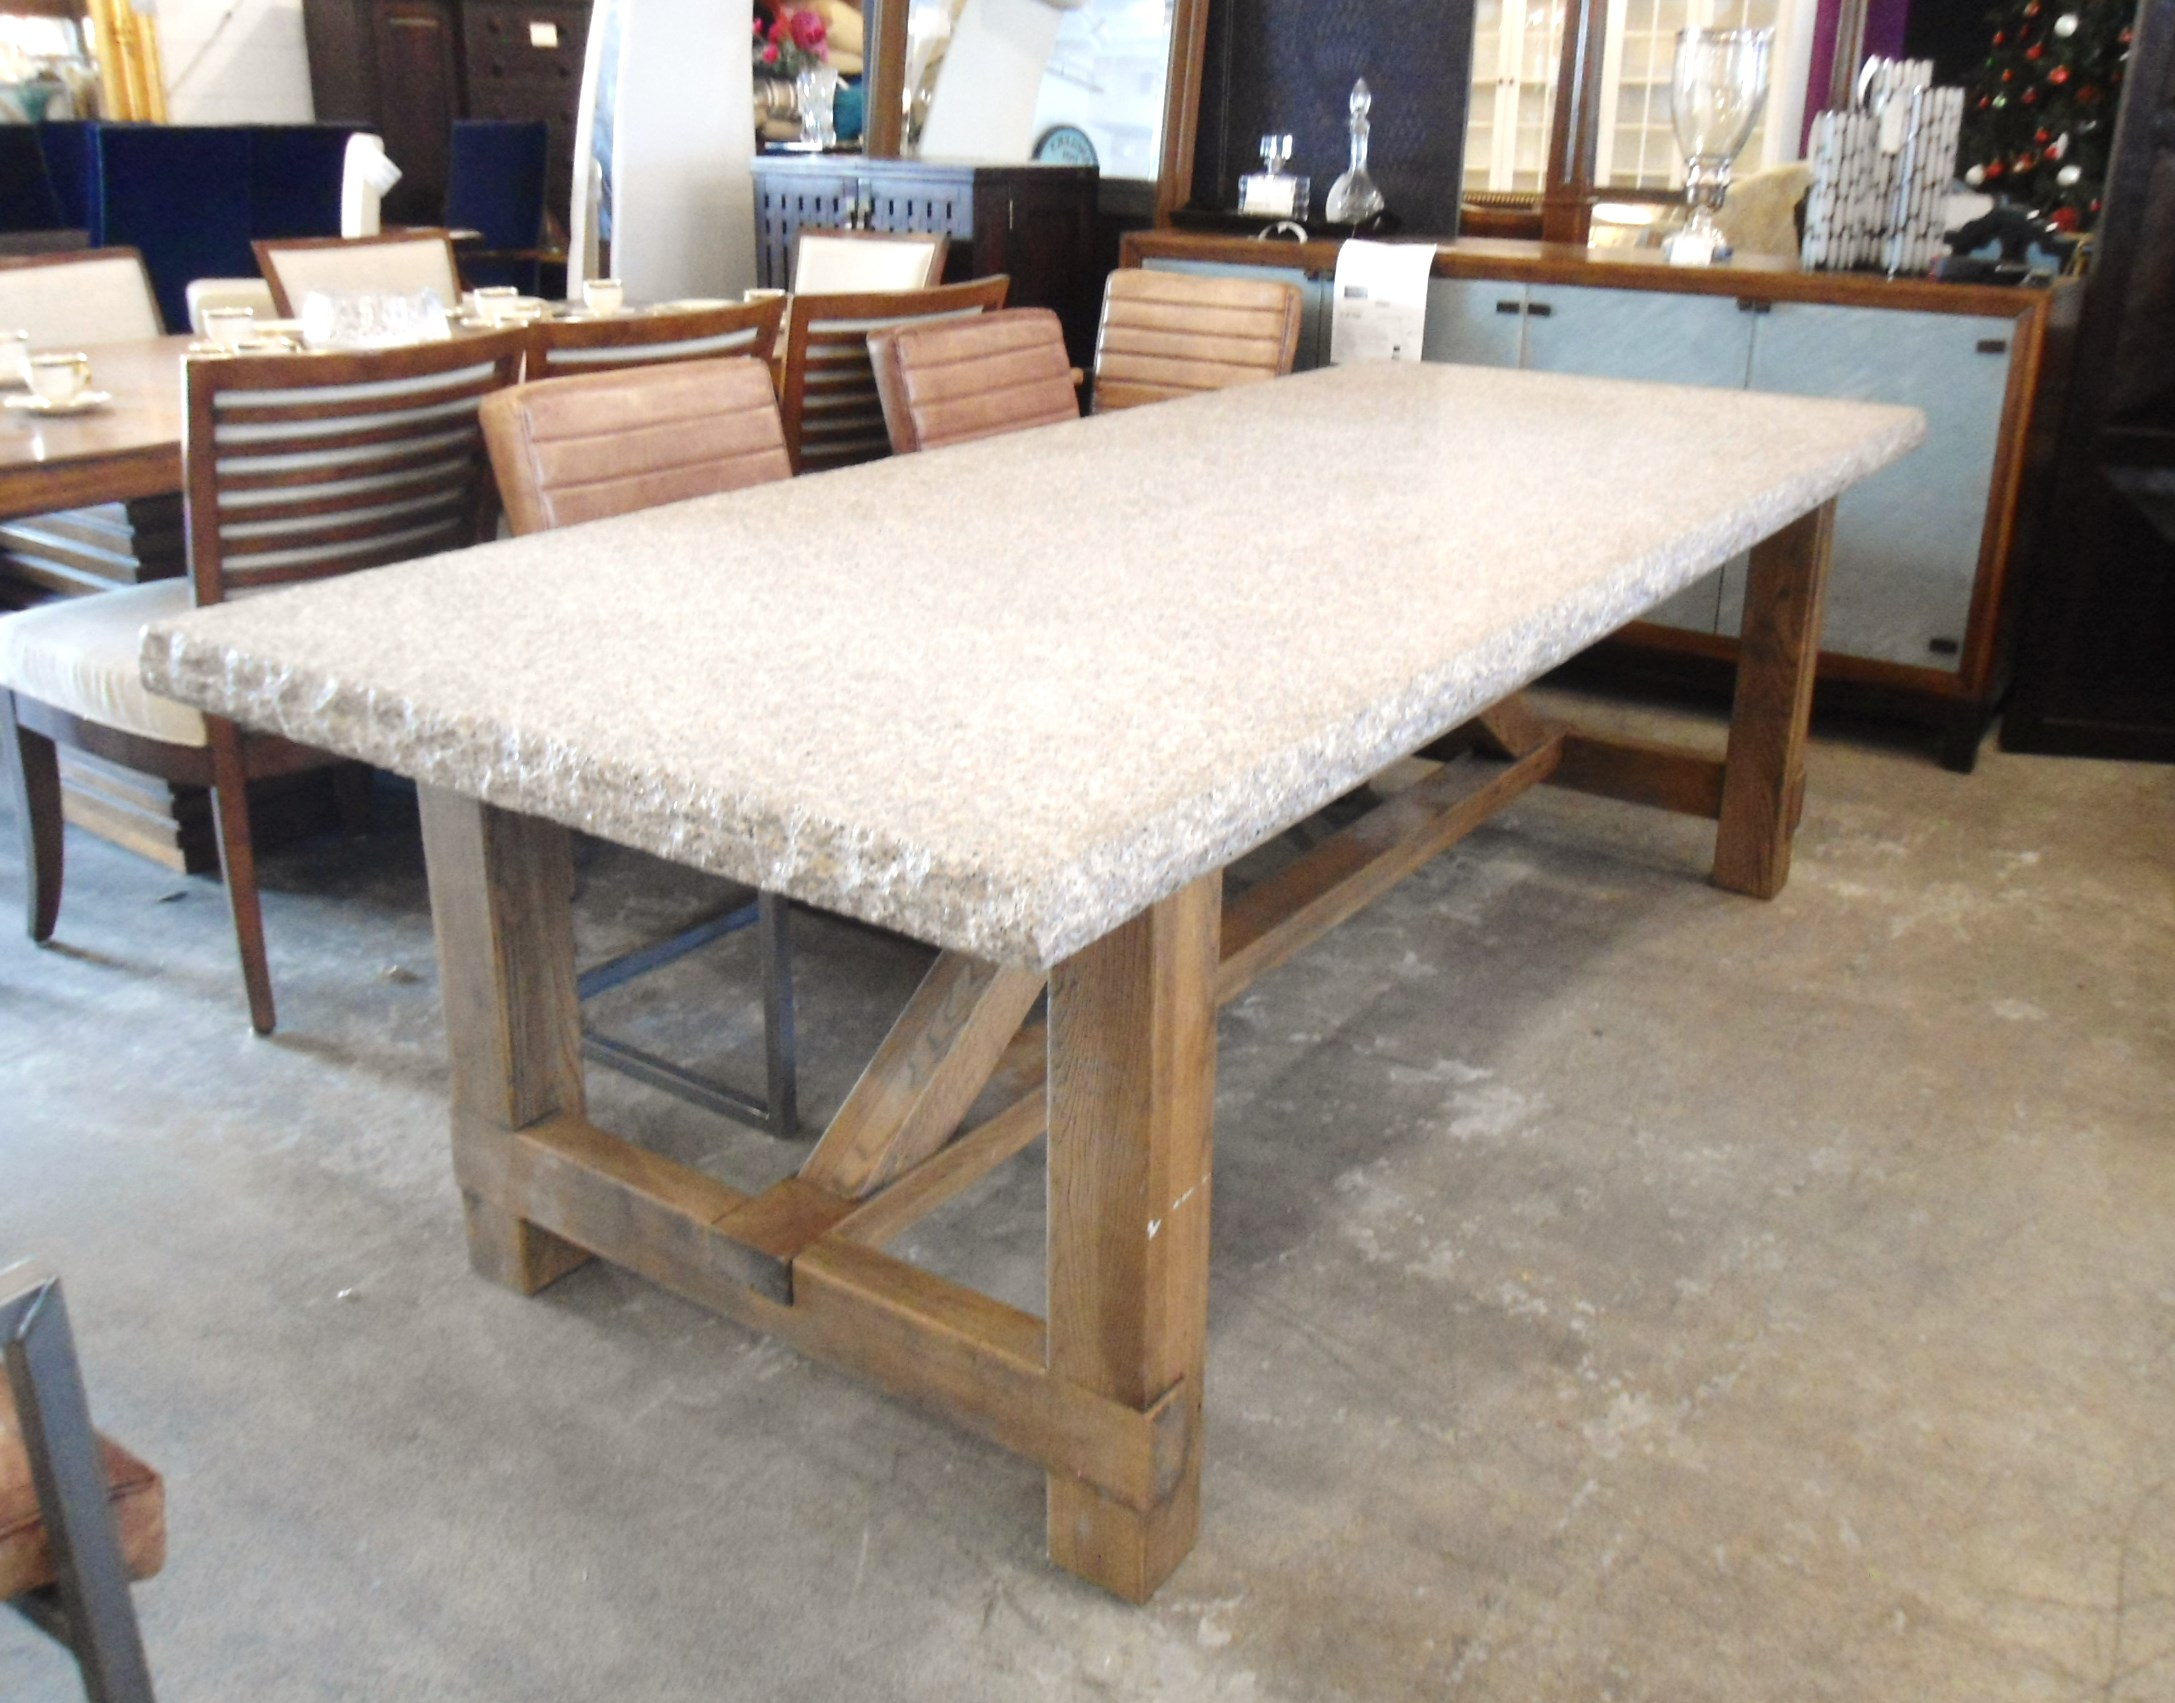 Granite Top Dining Table with Raw Wood Base Chairish : granite top dining table with raw wood base 3999aspectfitampwidth640ampheight640 from www.chairish.com size 640 x 640 jpeg 56kB